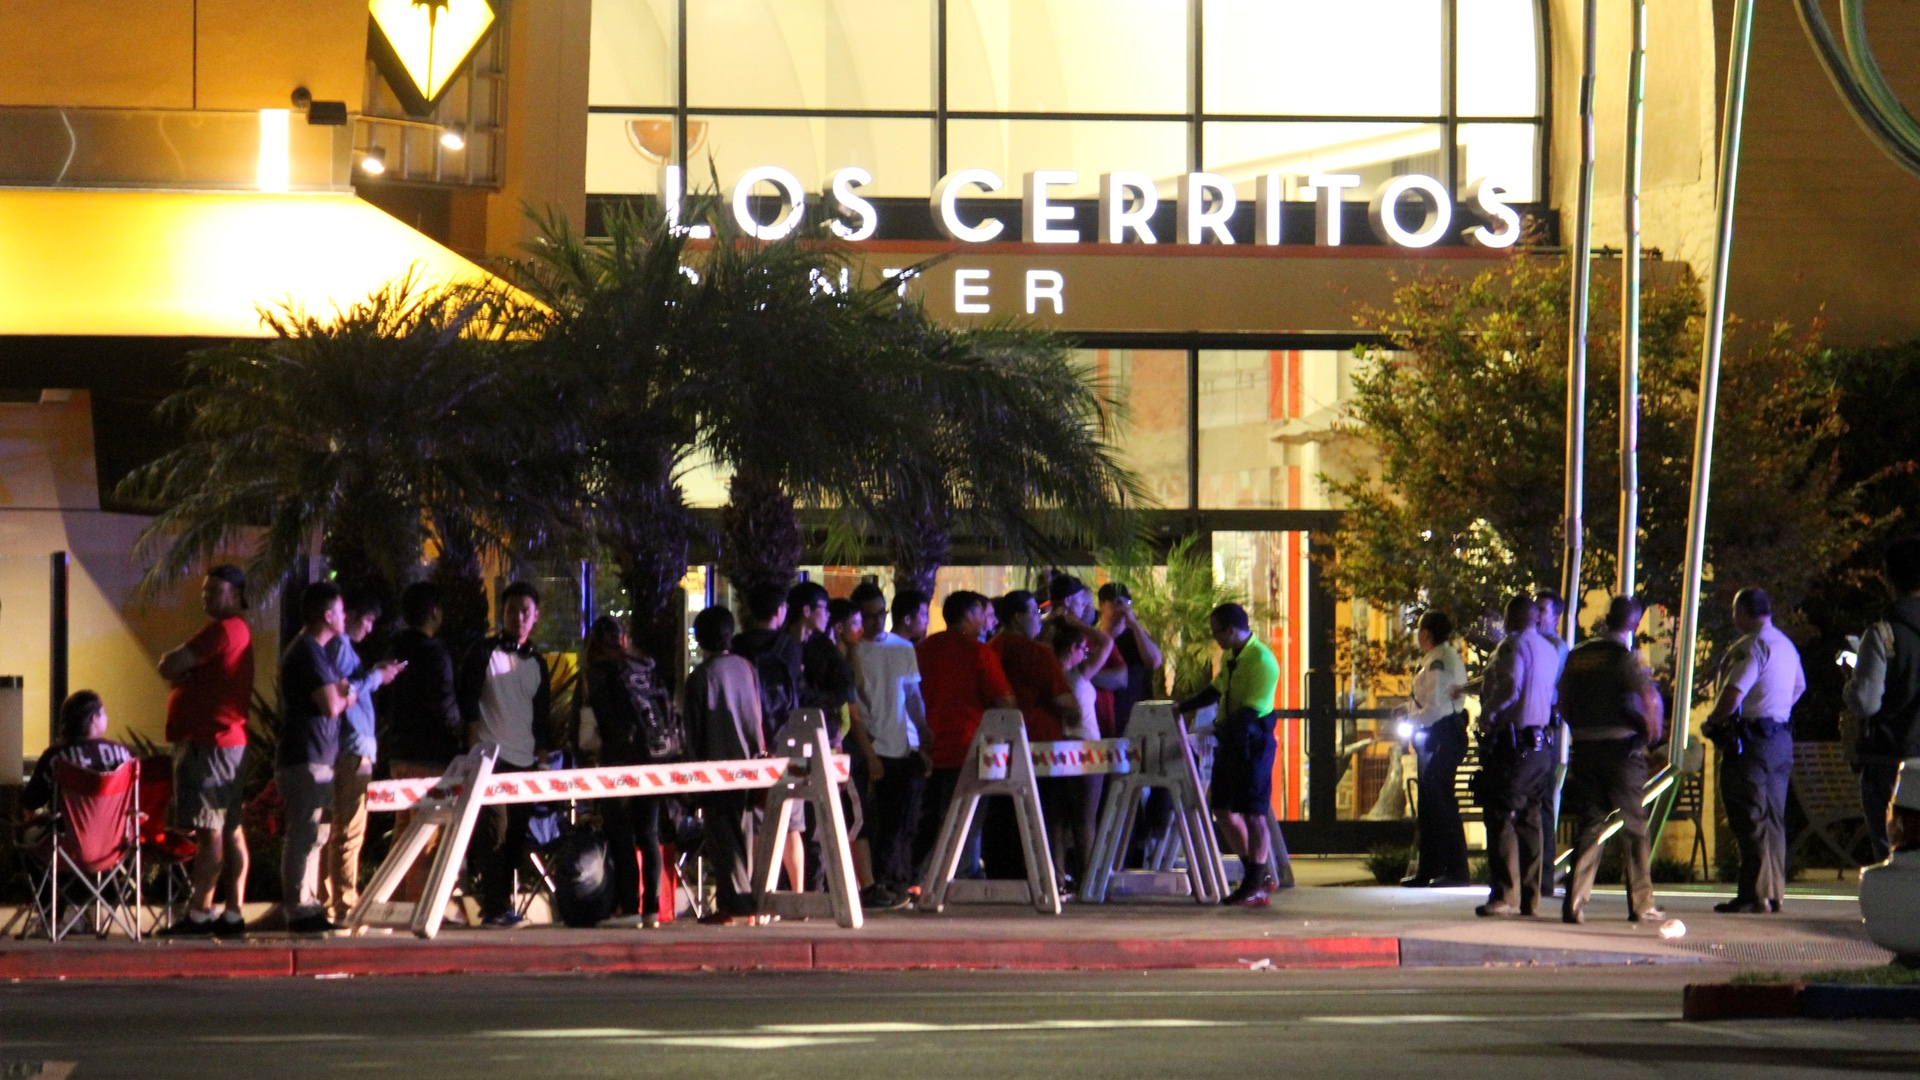 Apple Store Los Cerritos Center, iPhone 6 and iPhone 6 Plus